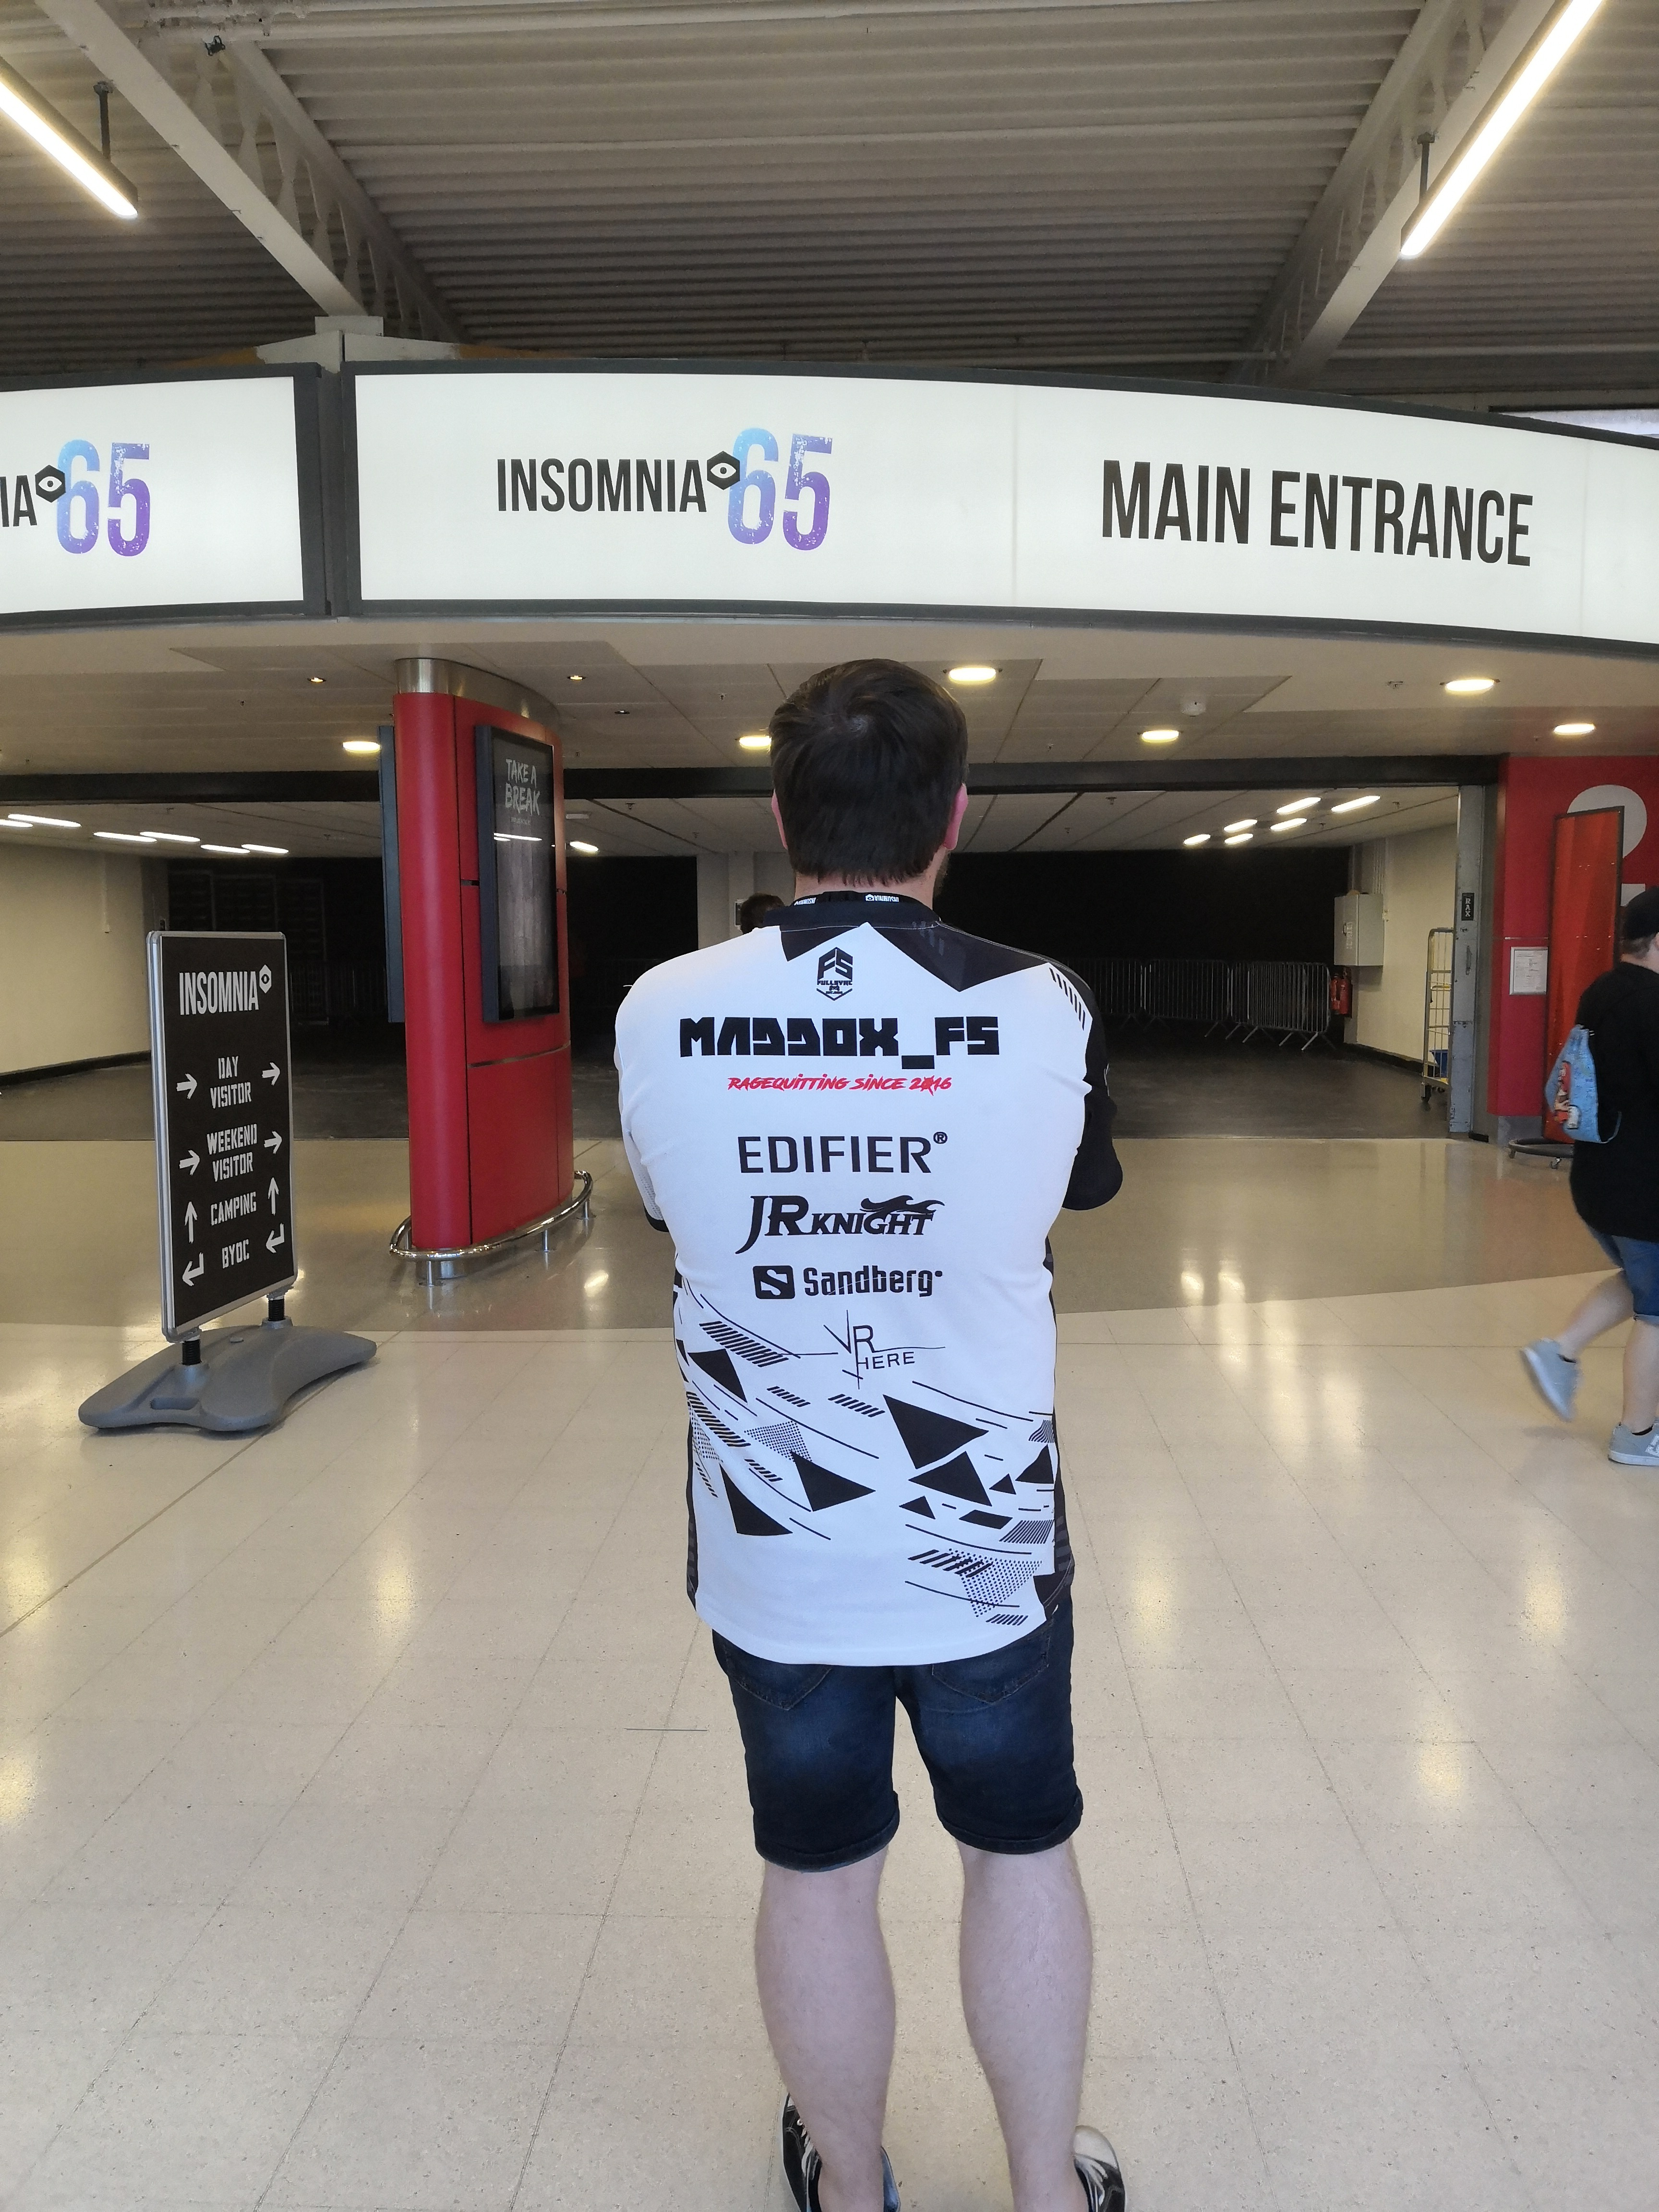 MaddOx_FS getting ready to enter the gamer's paradise